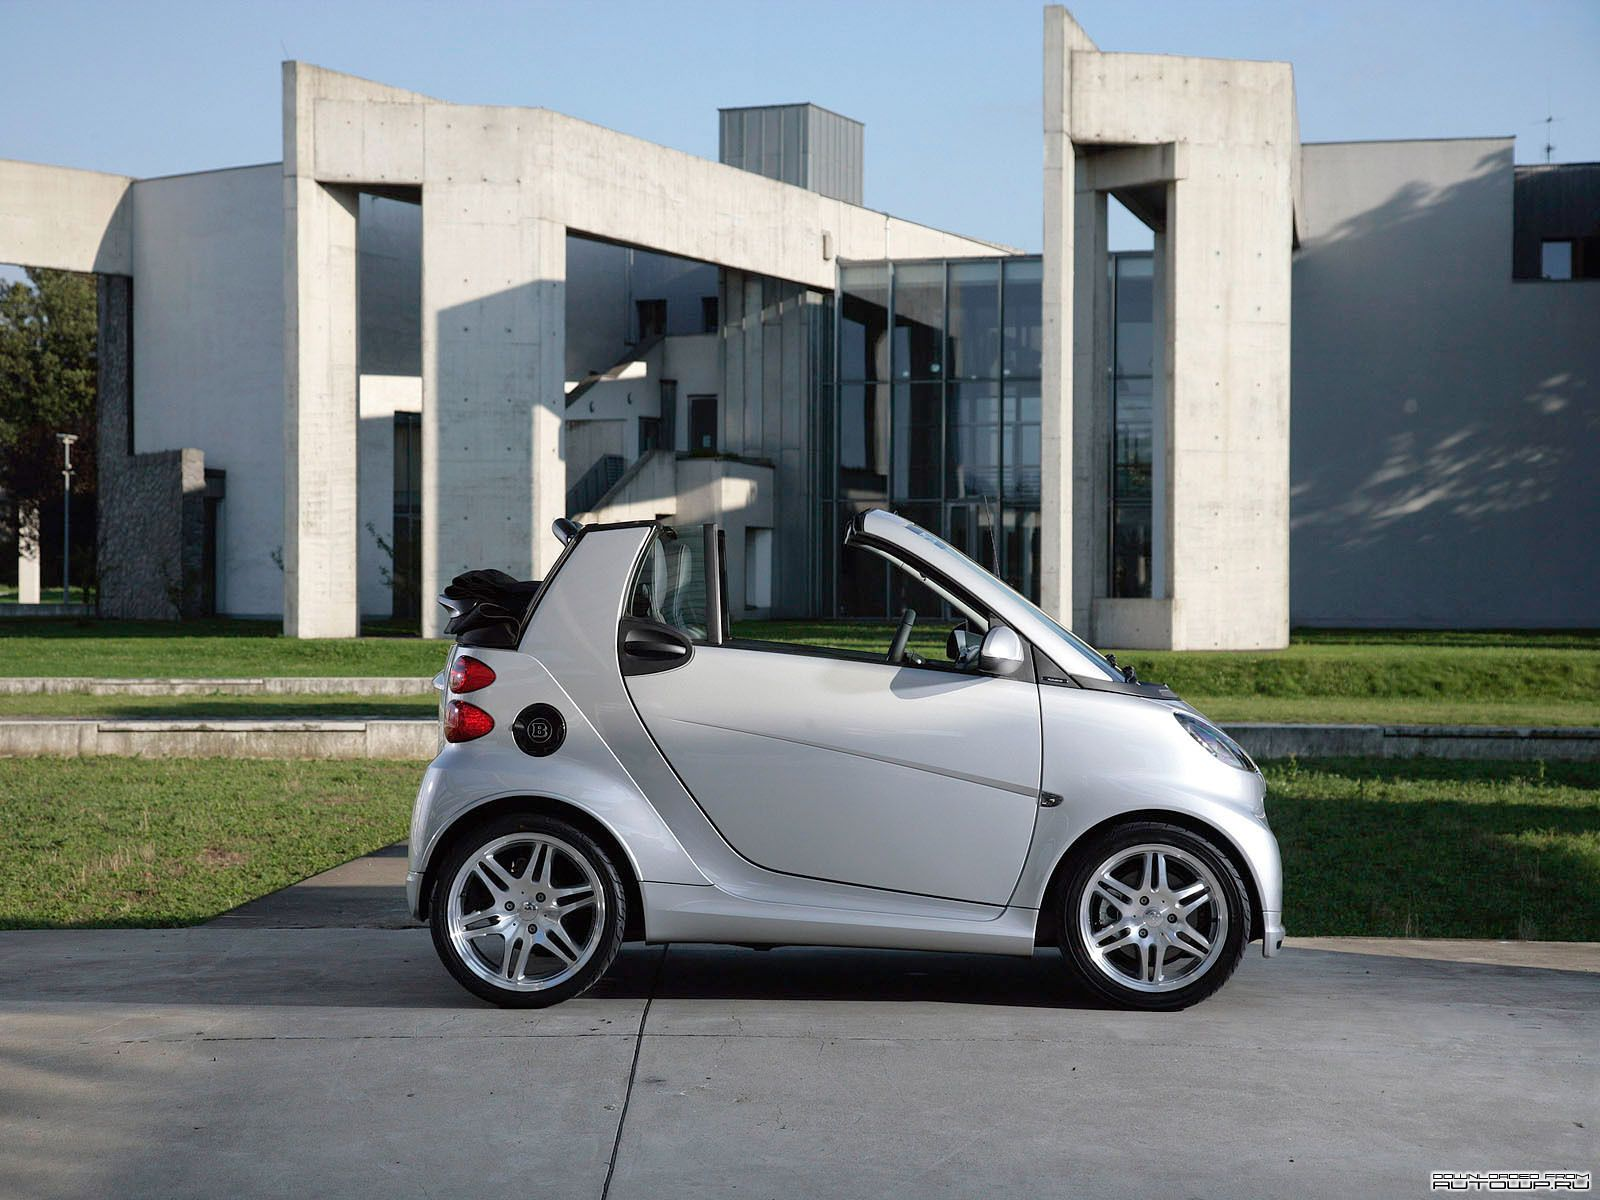 Smart brabus xclusive smart pinterest smart brabus smart car smart brabus xclusive altavistaventures Image collections